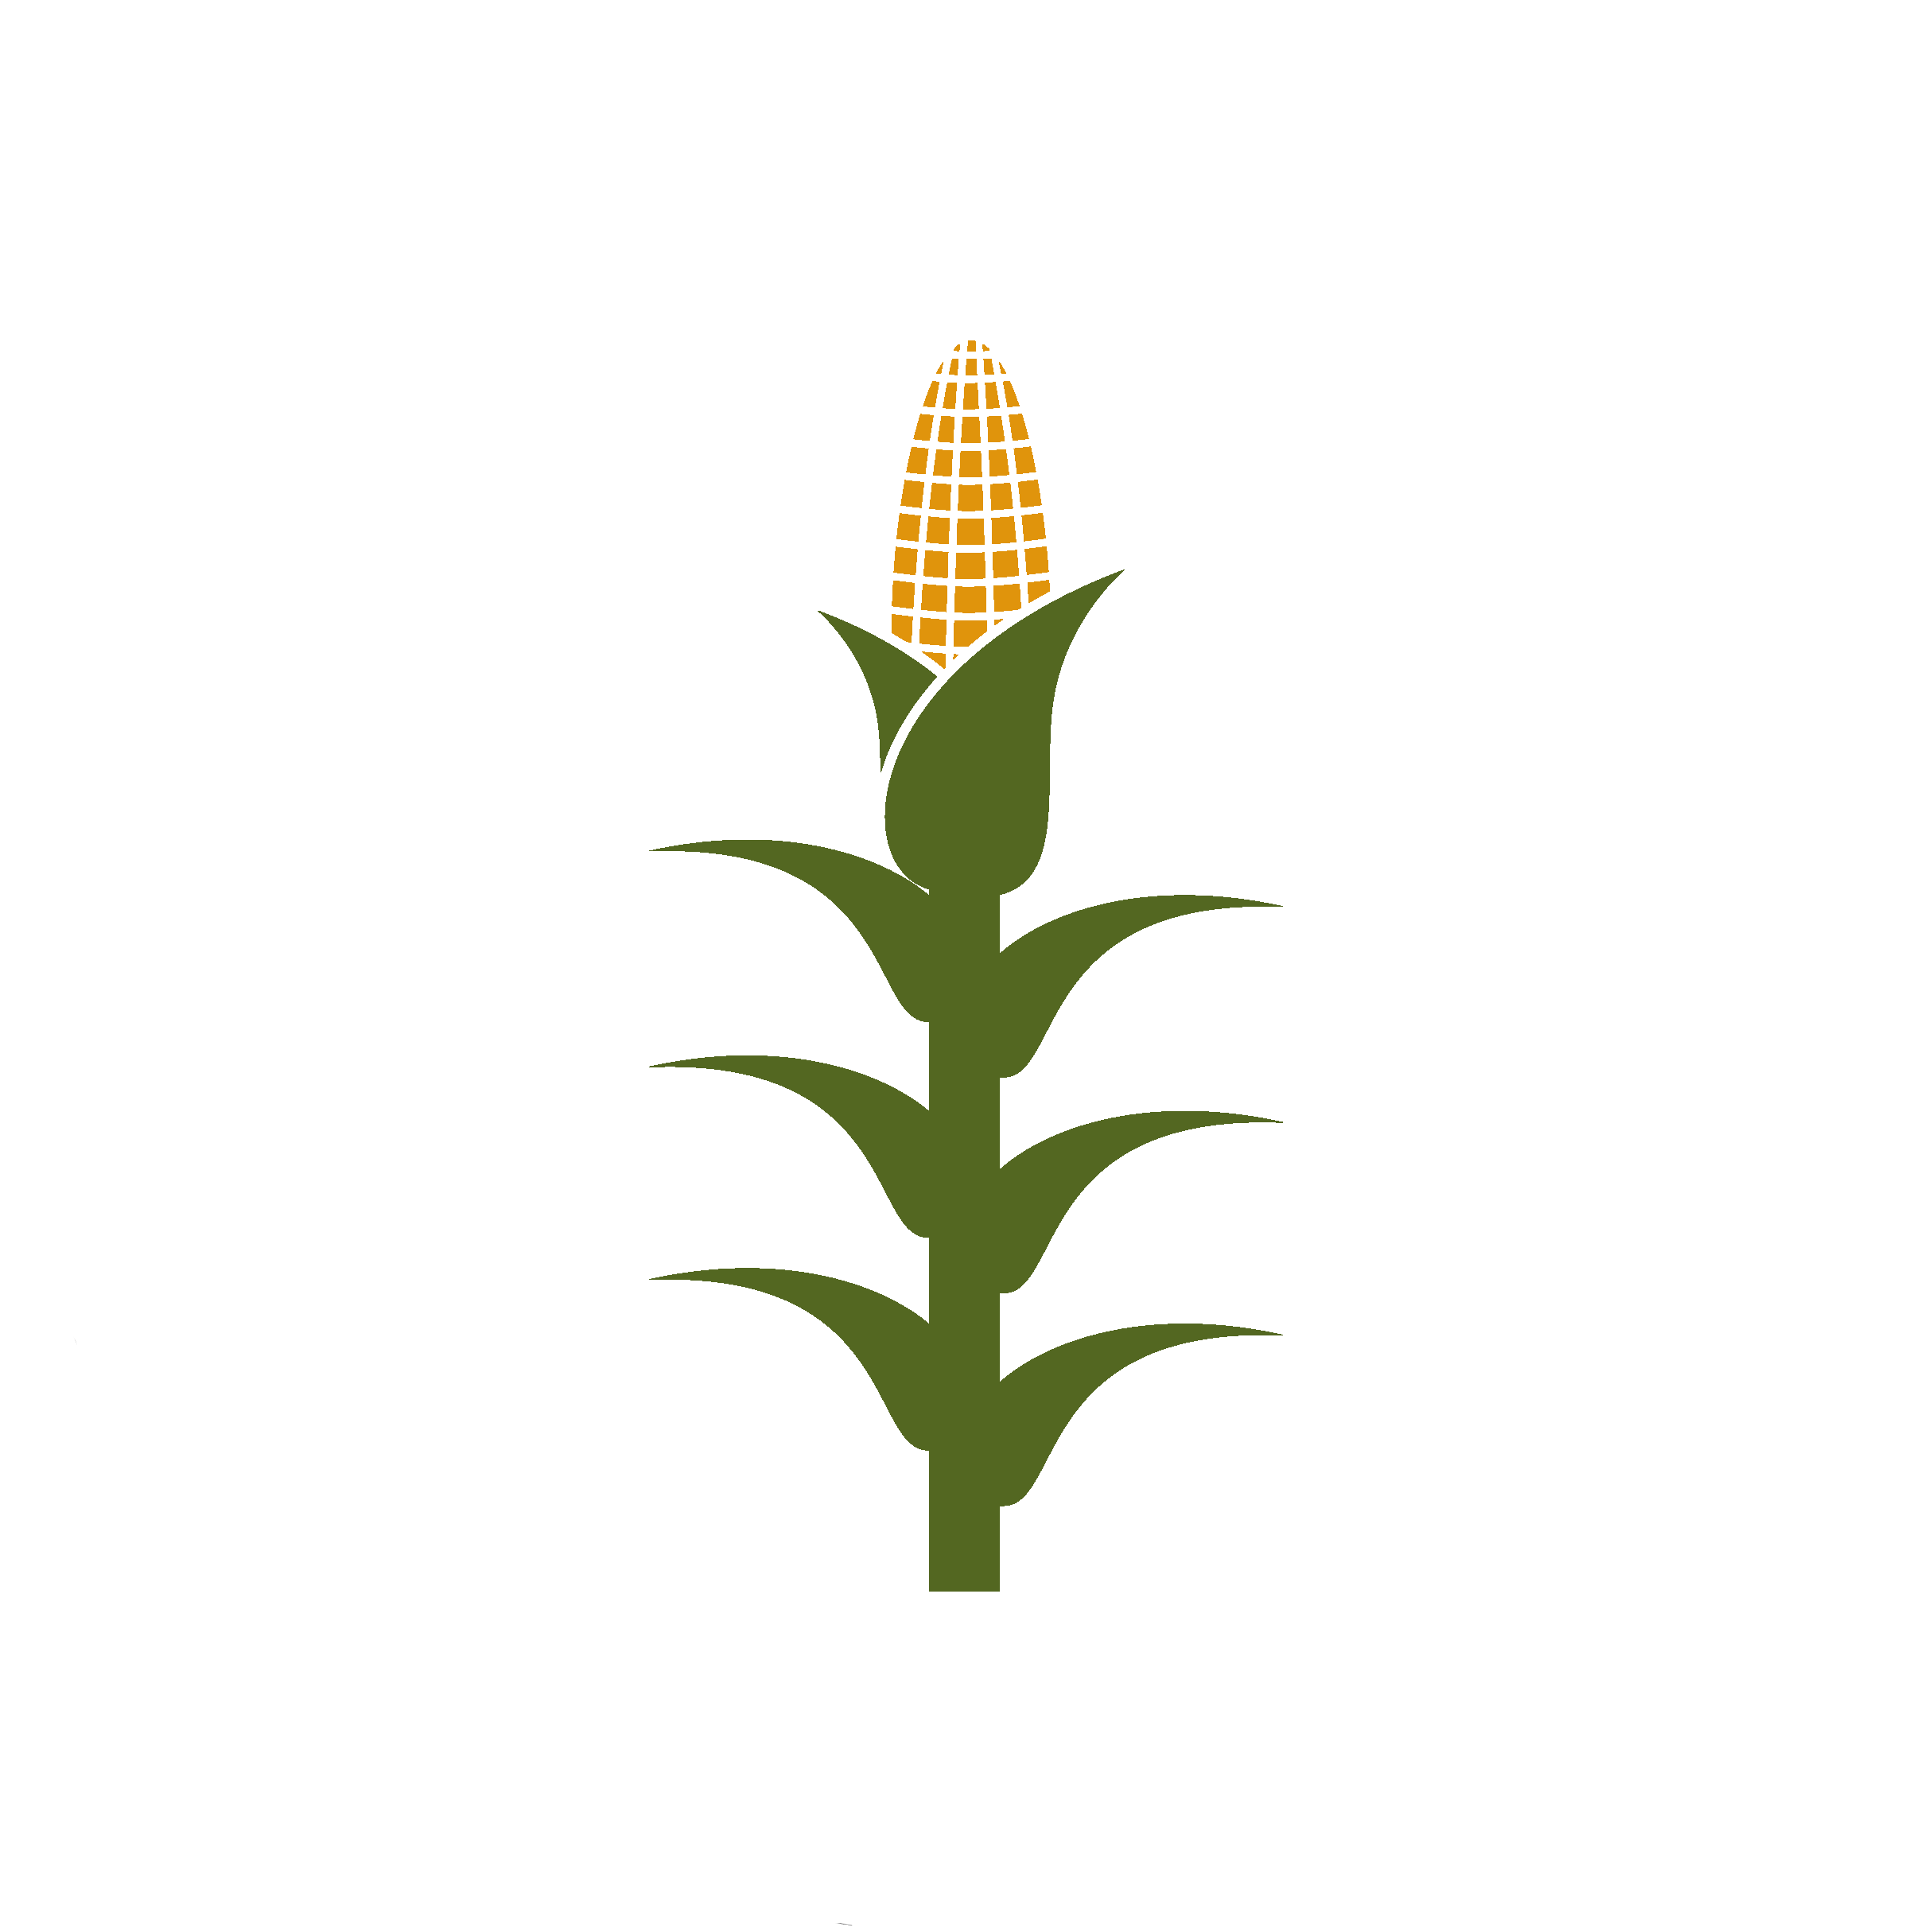 Corn stalk png. Copy crops